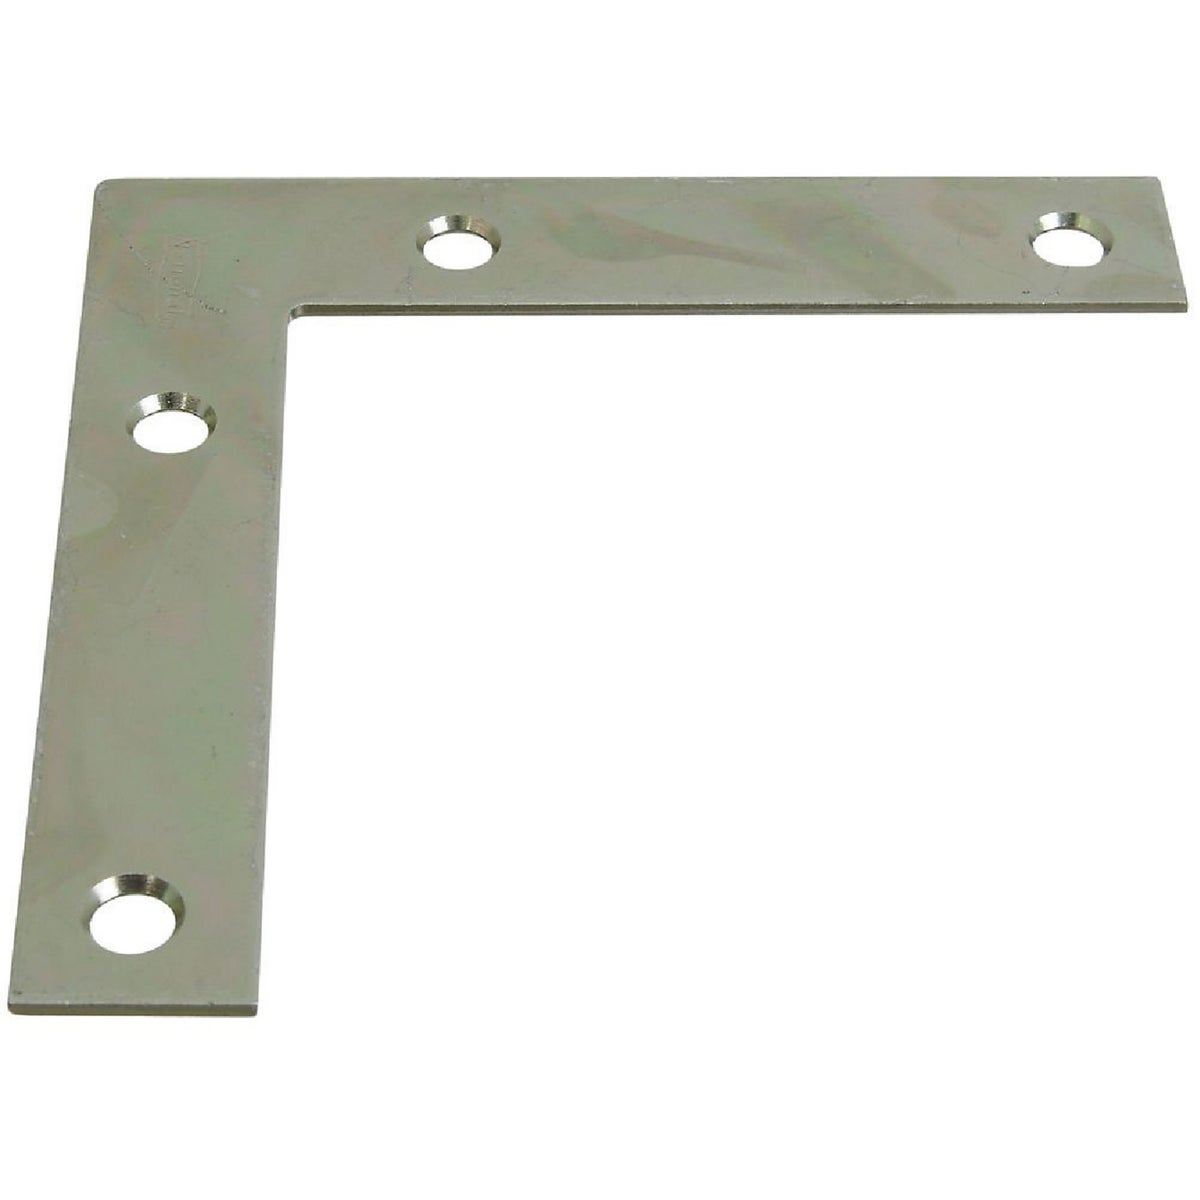 4X3/4 CORNER IRON - N114116 by National Mfg Co